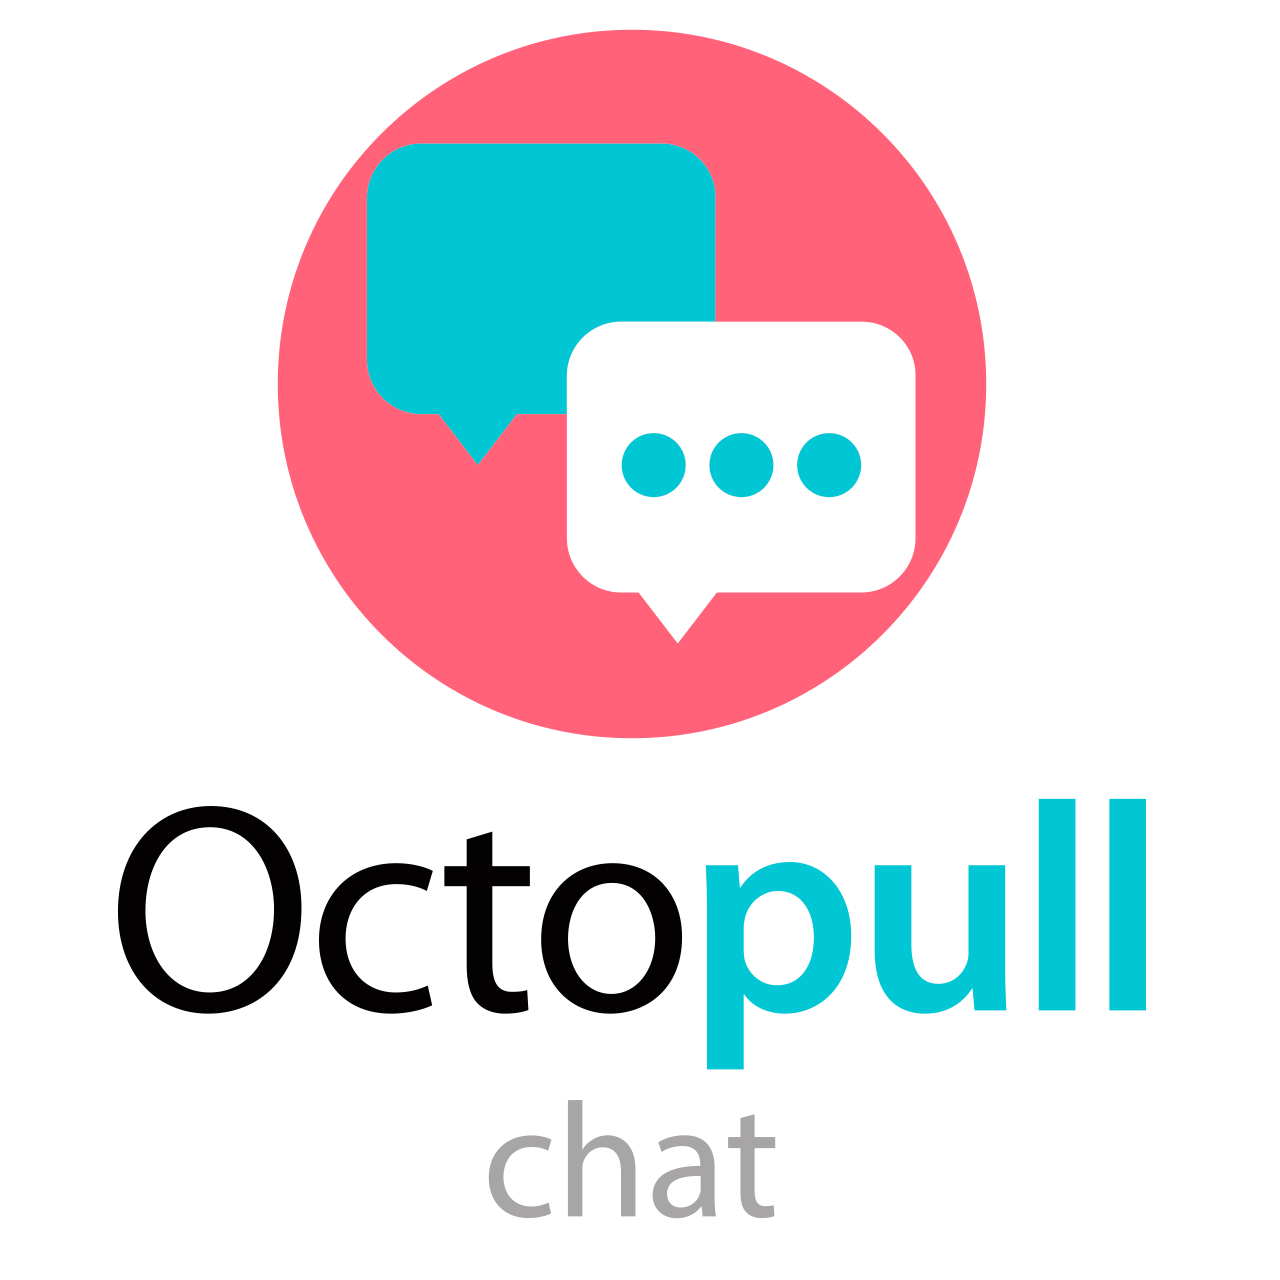 logo-octopull-chat.png